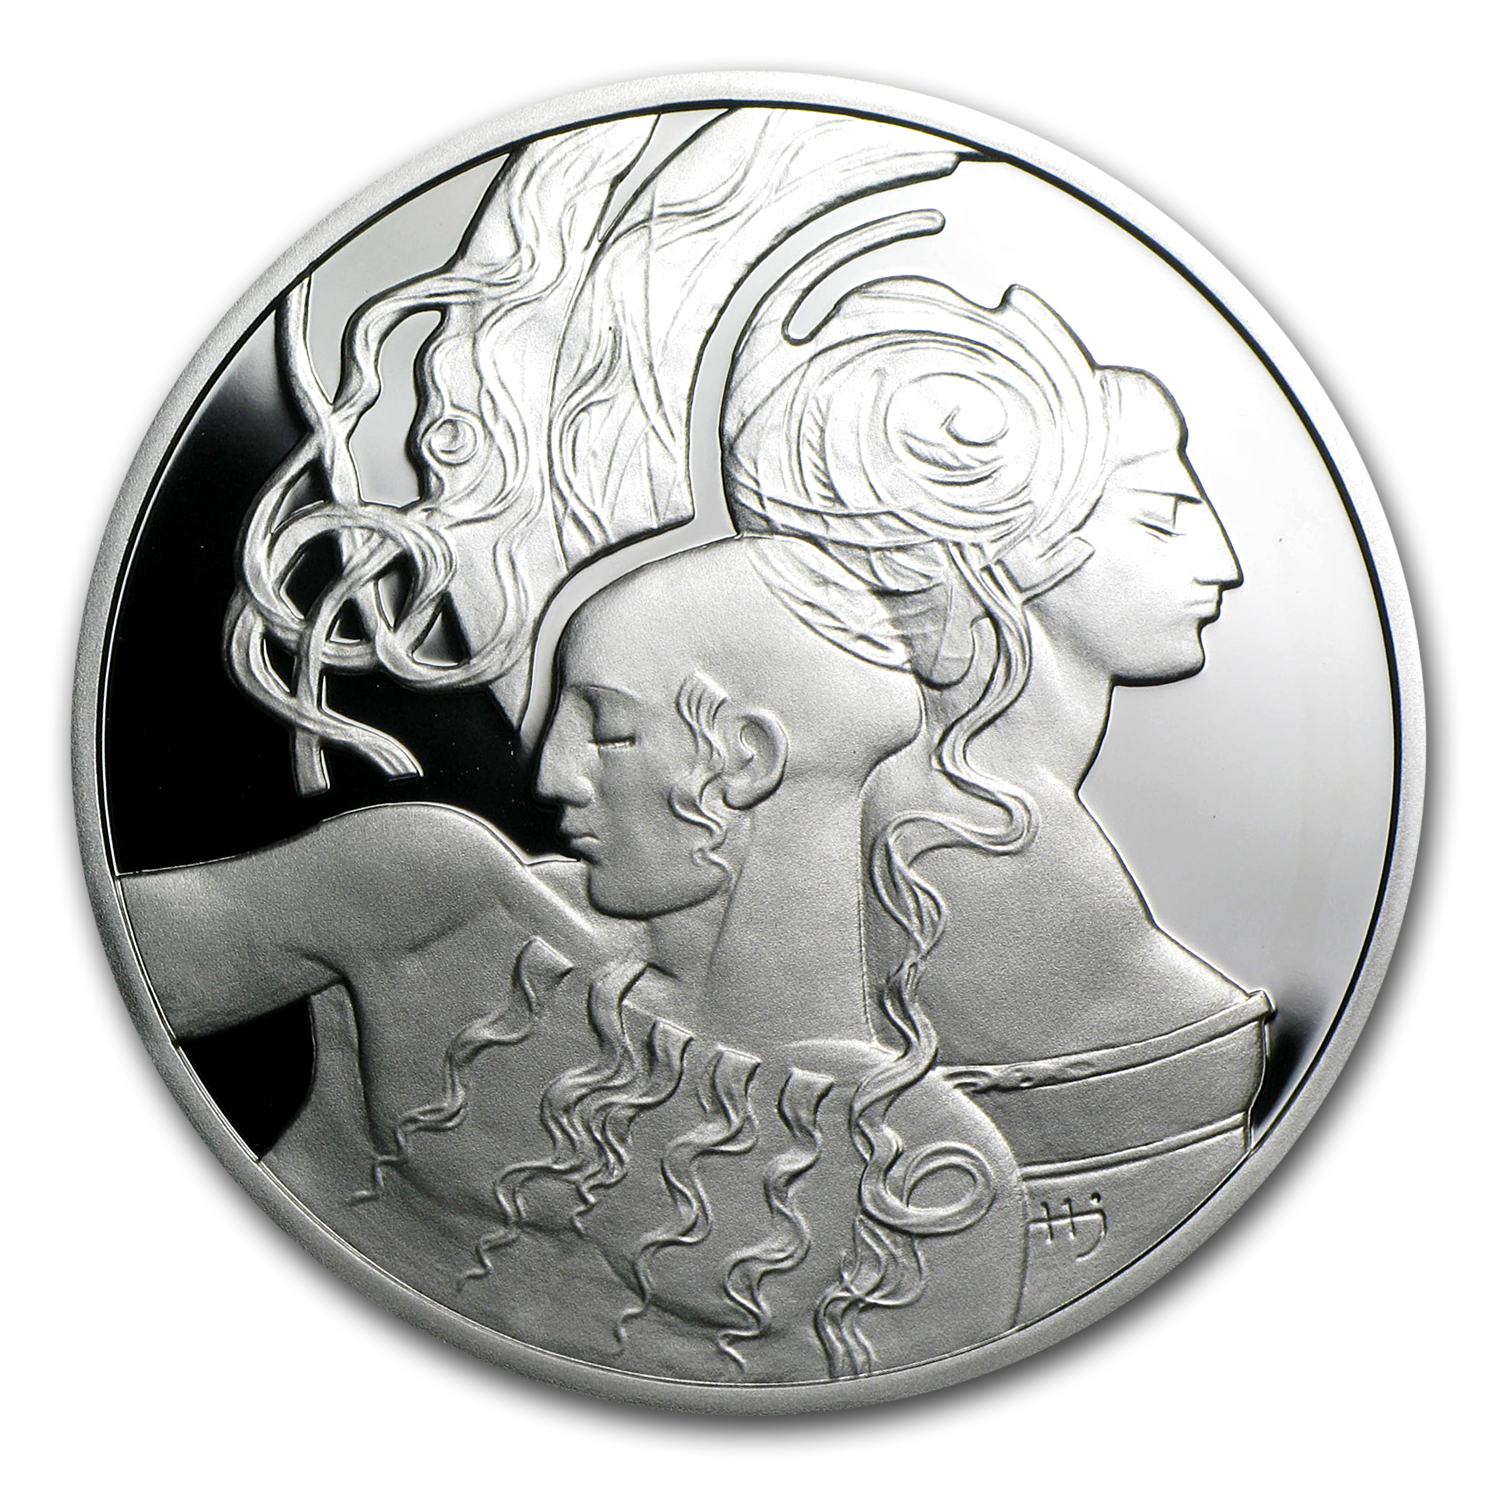 Niue 2010 Proof Silver $1 Famous Love Stories - Samson & Delilah